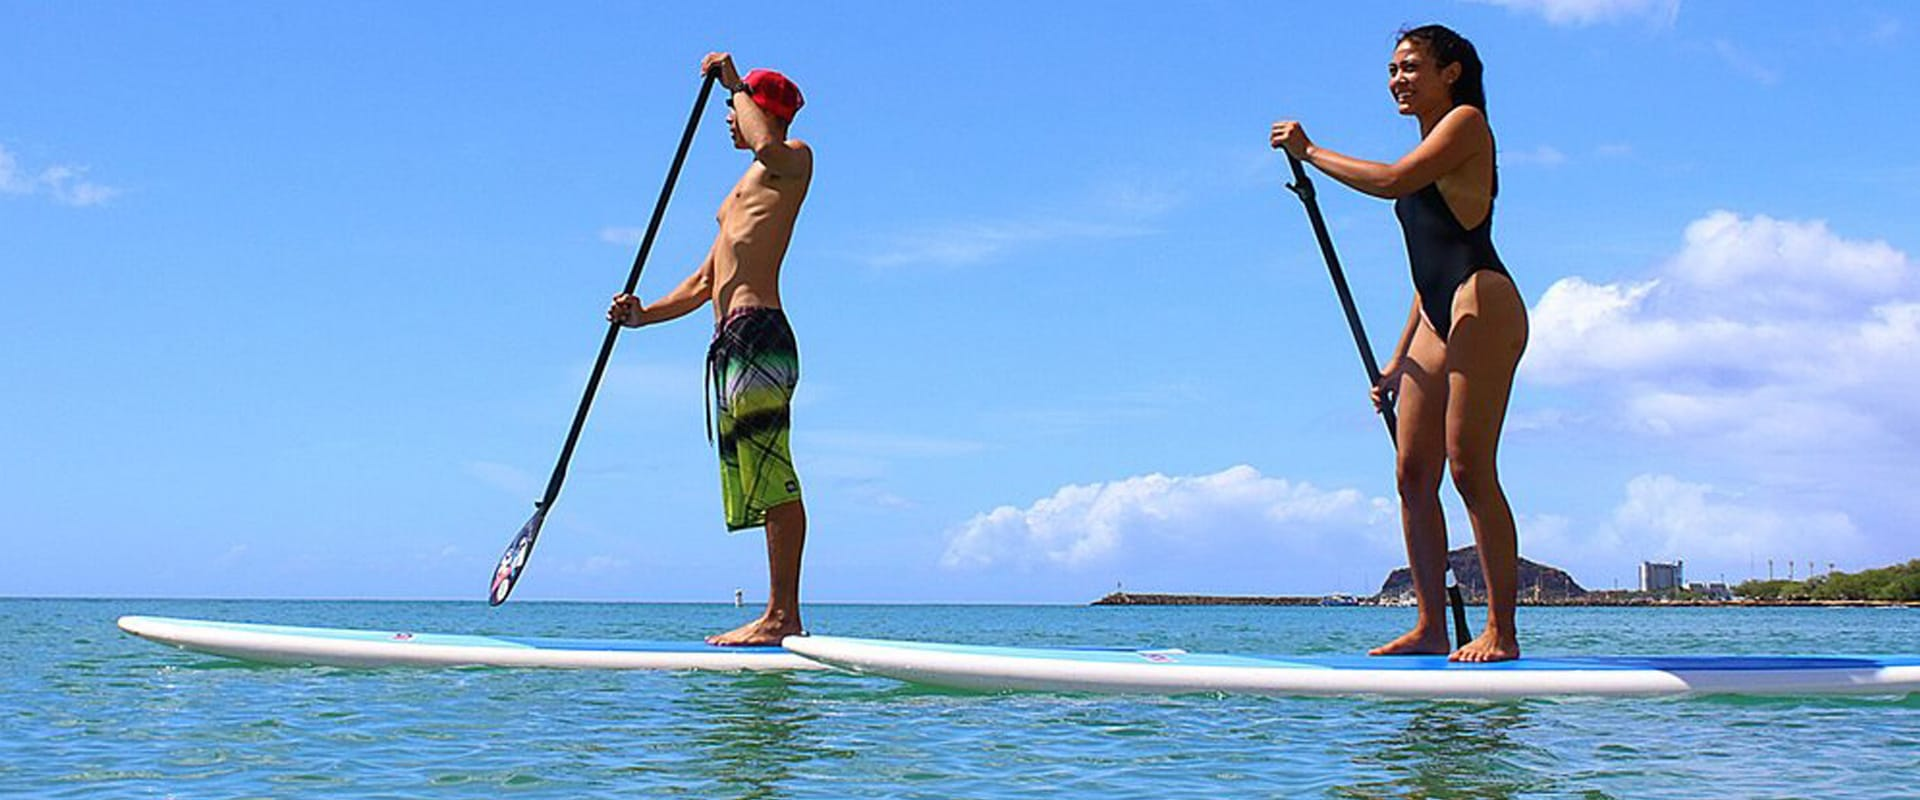 Stand Up Paddle boarding is a great way to explore the ocean